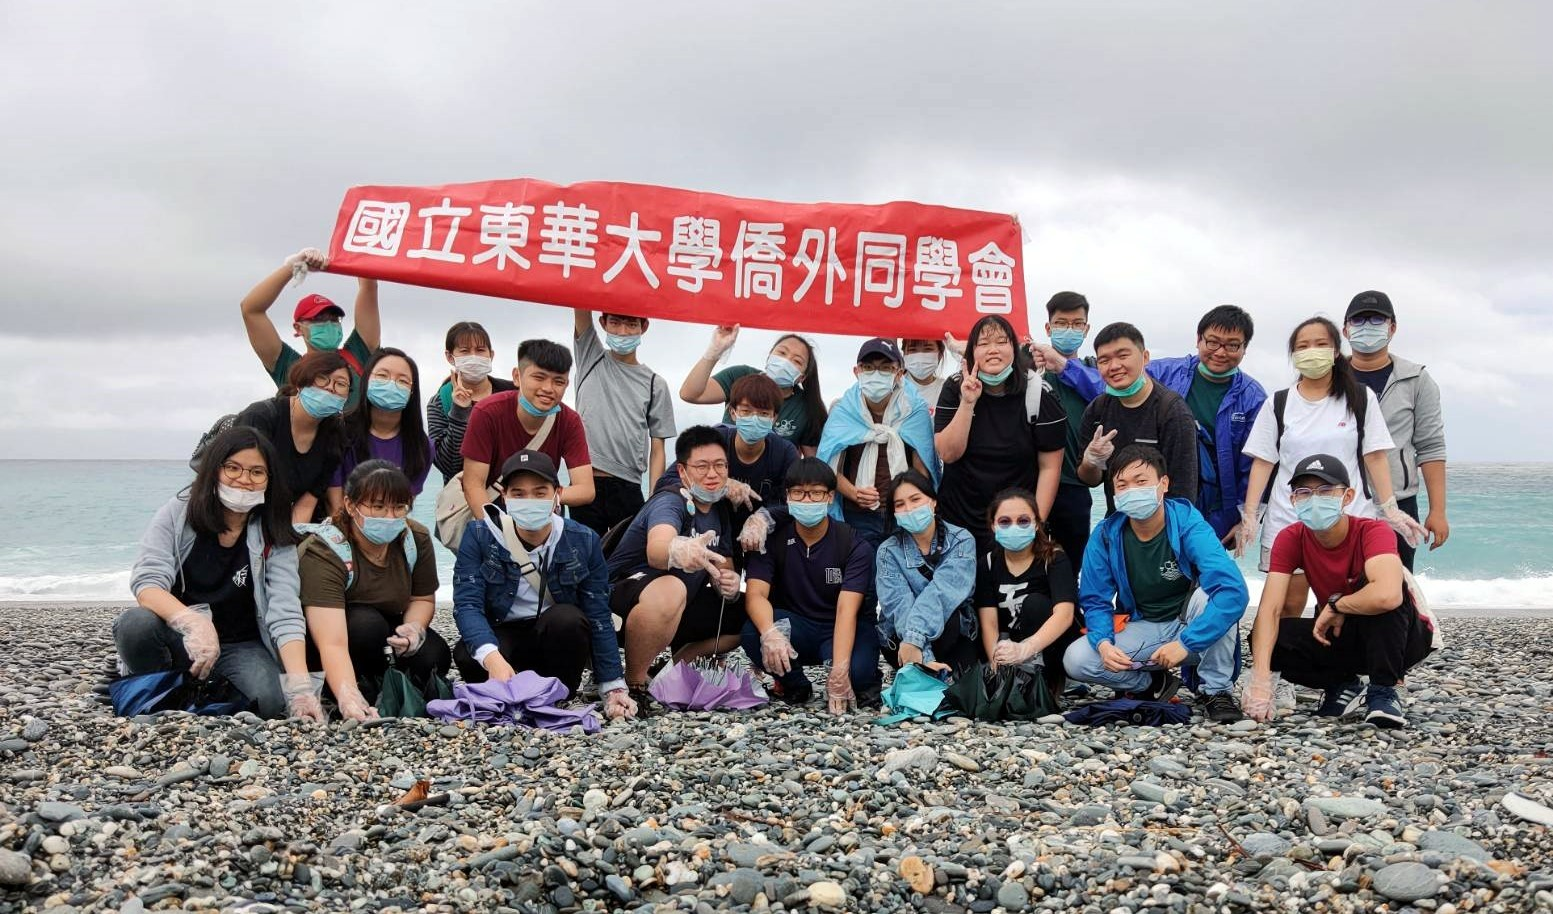 OCSA believes that beach cleanup is an educational activity